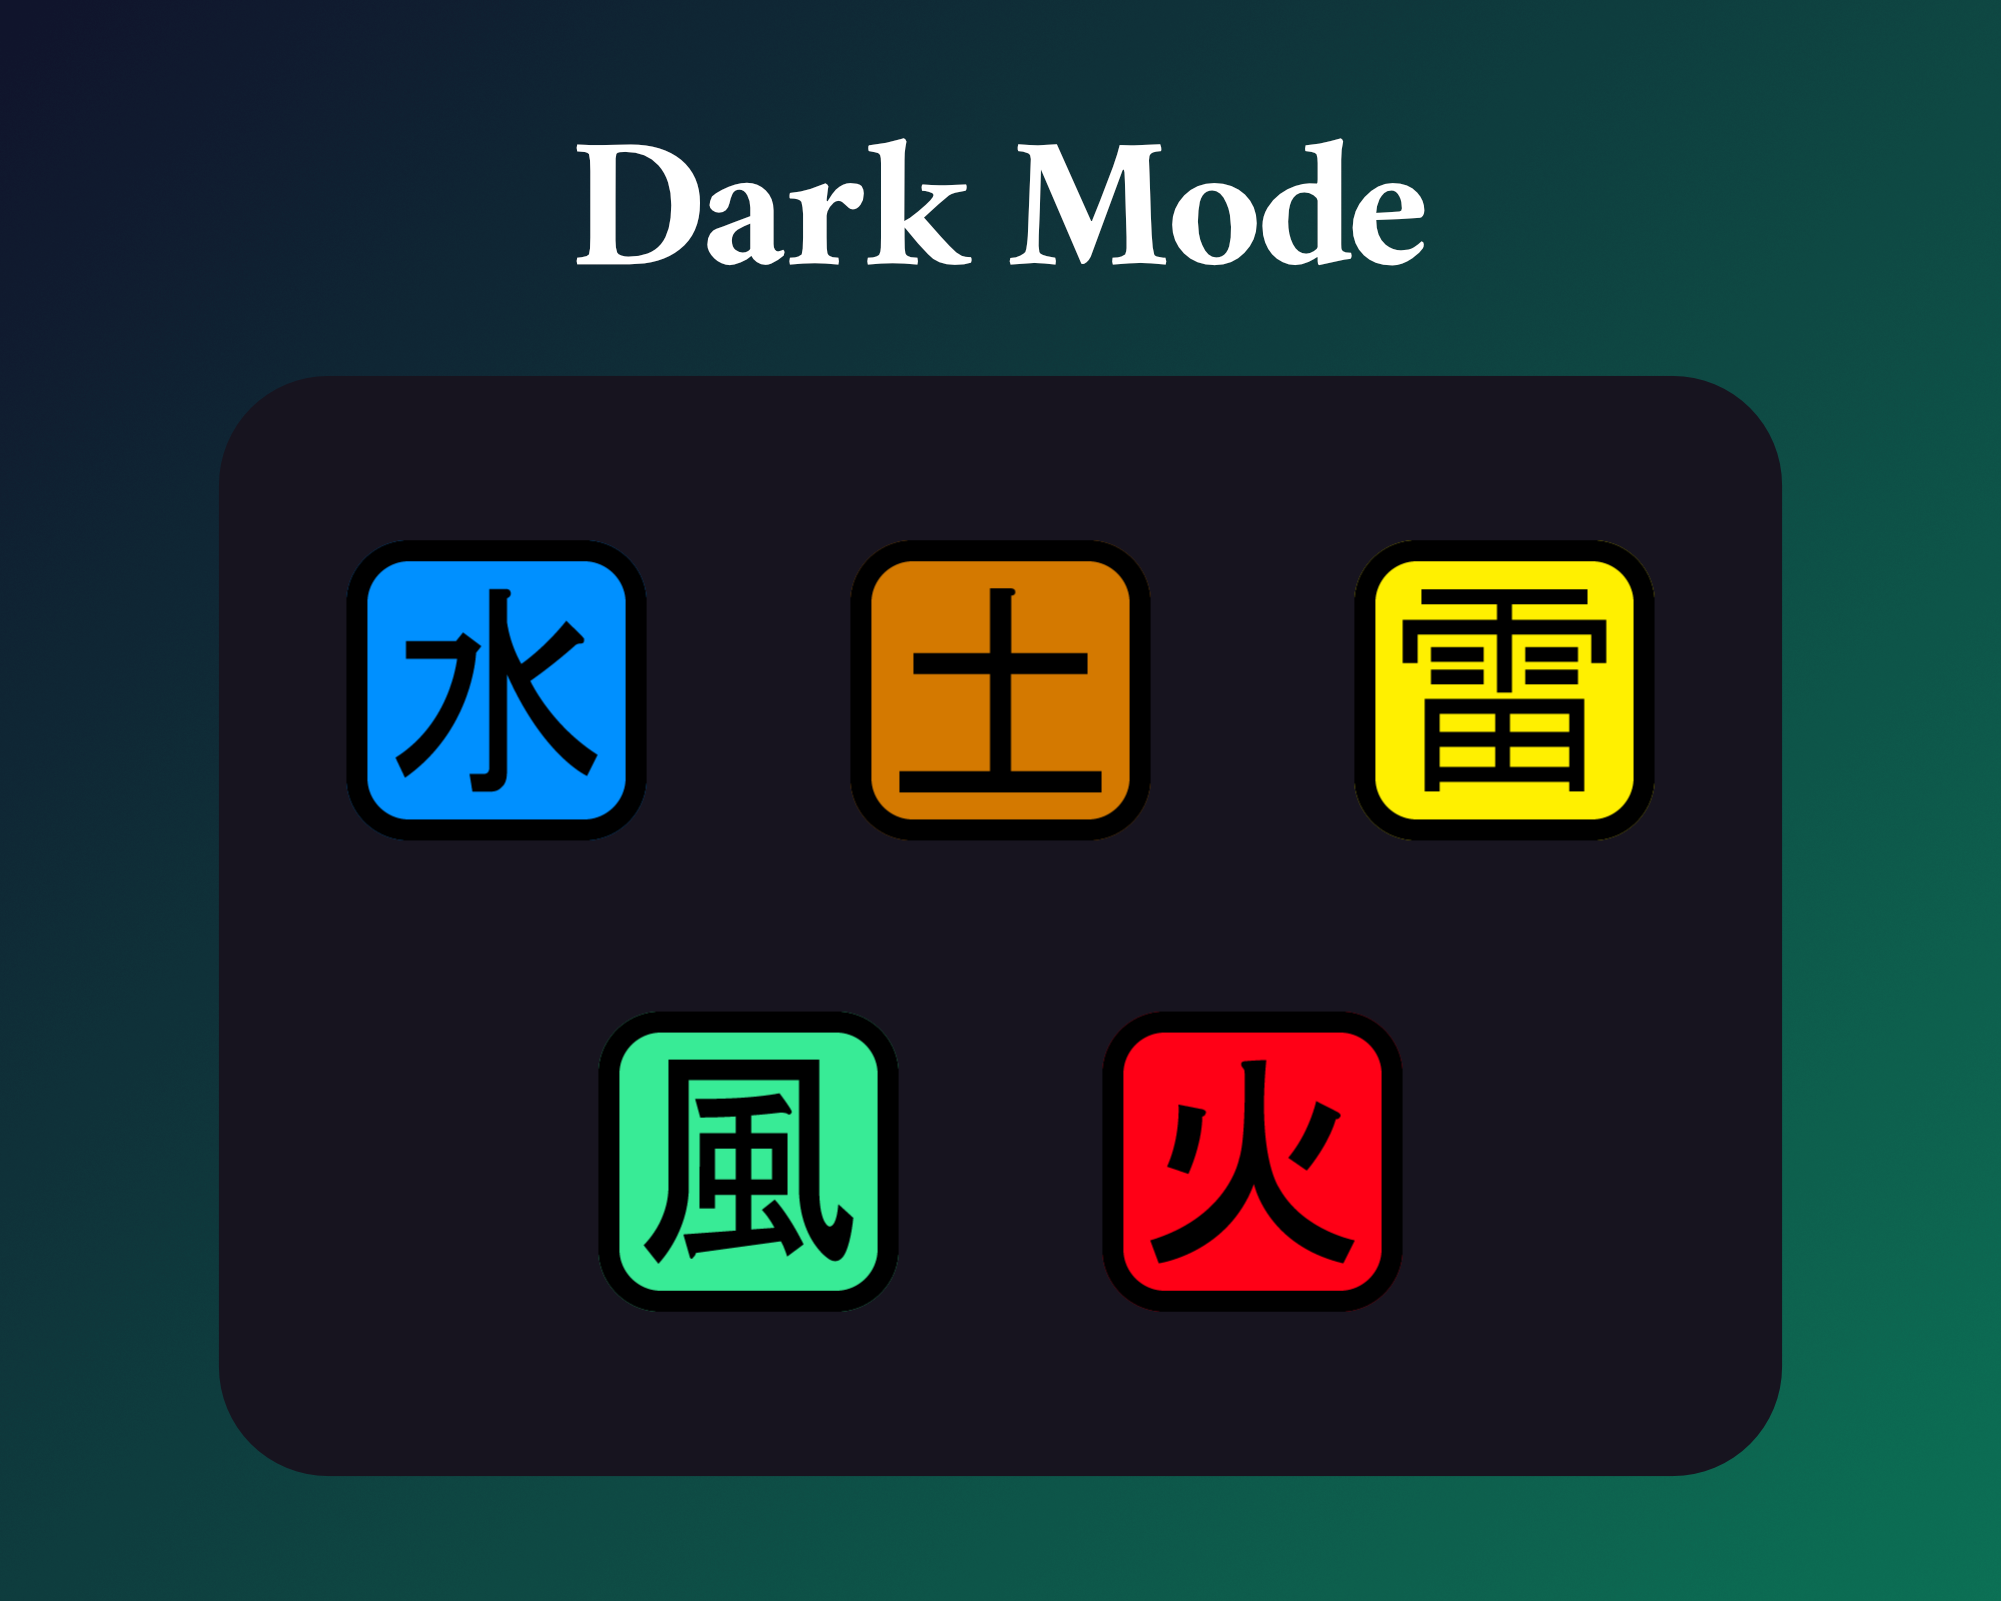 Naruto anime sub badges for twitch on dark mode